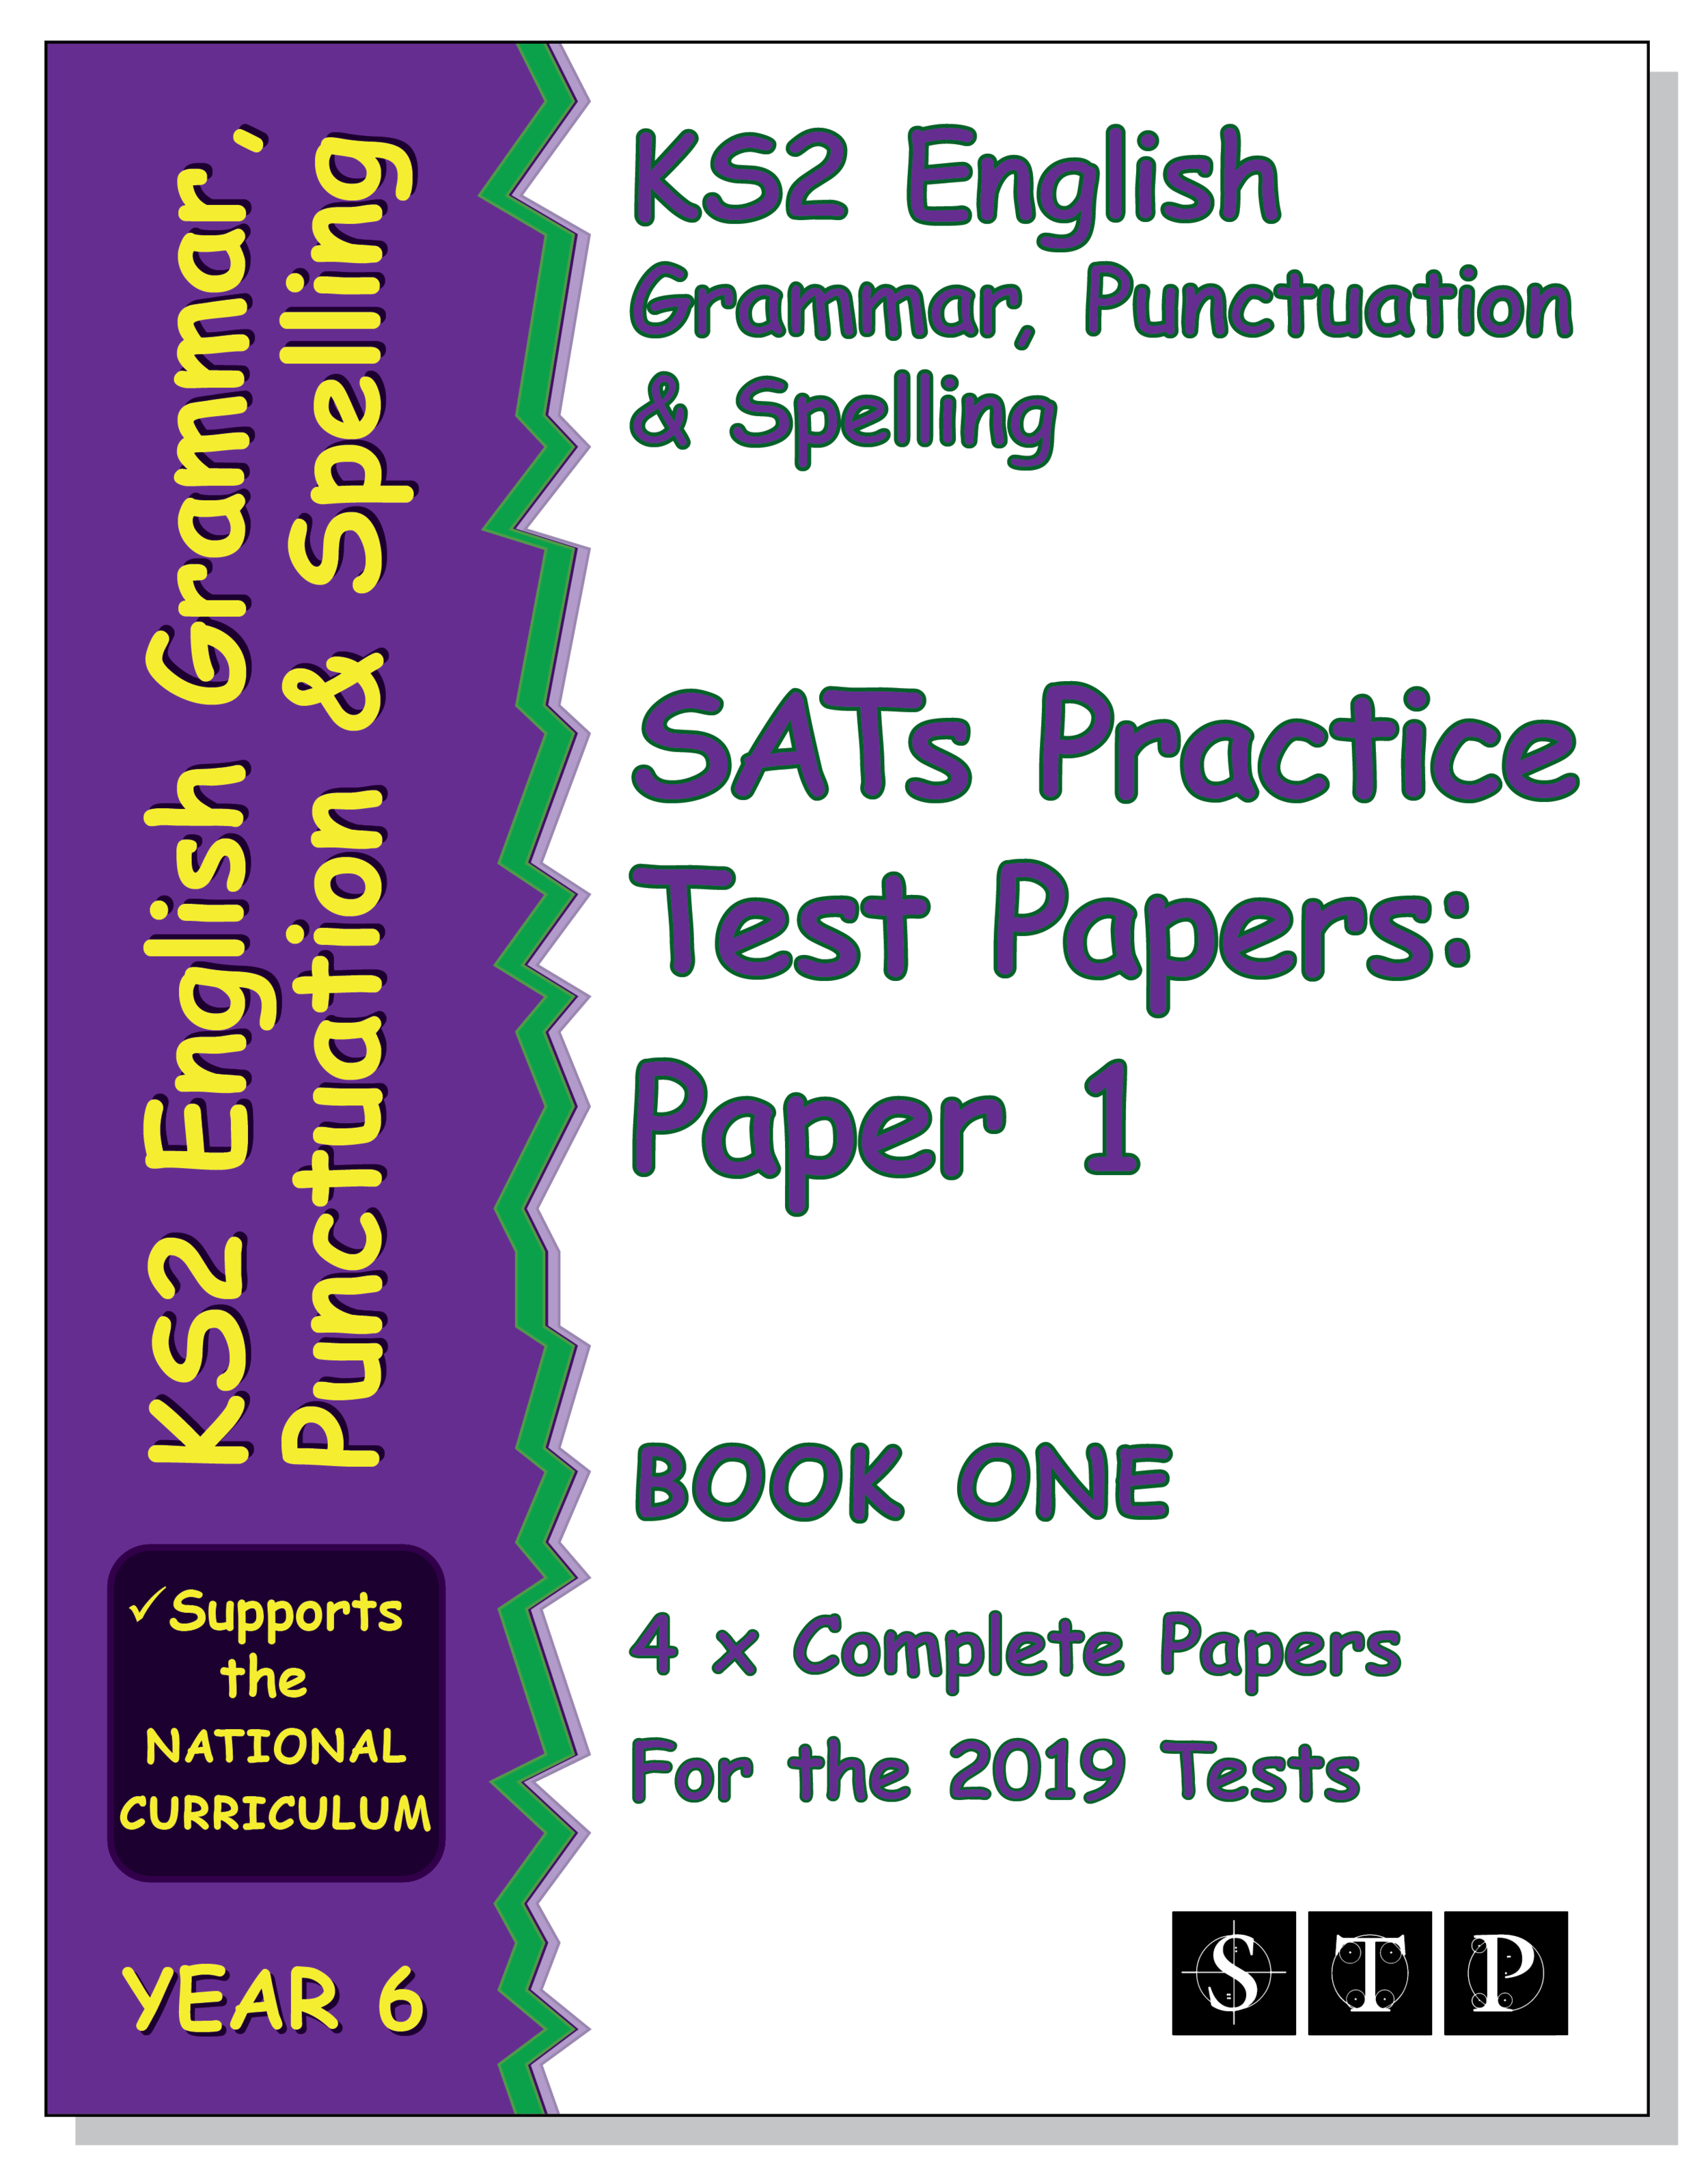 STP Books KS2 English Grammar, Punctuation and Spelling SATs Practice Test Papers for the 2019 Tests: Paper 1 - Book One (Year 6) (STP KS2 English Revision)